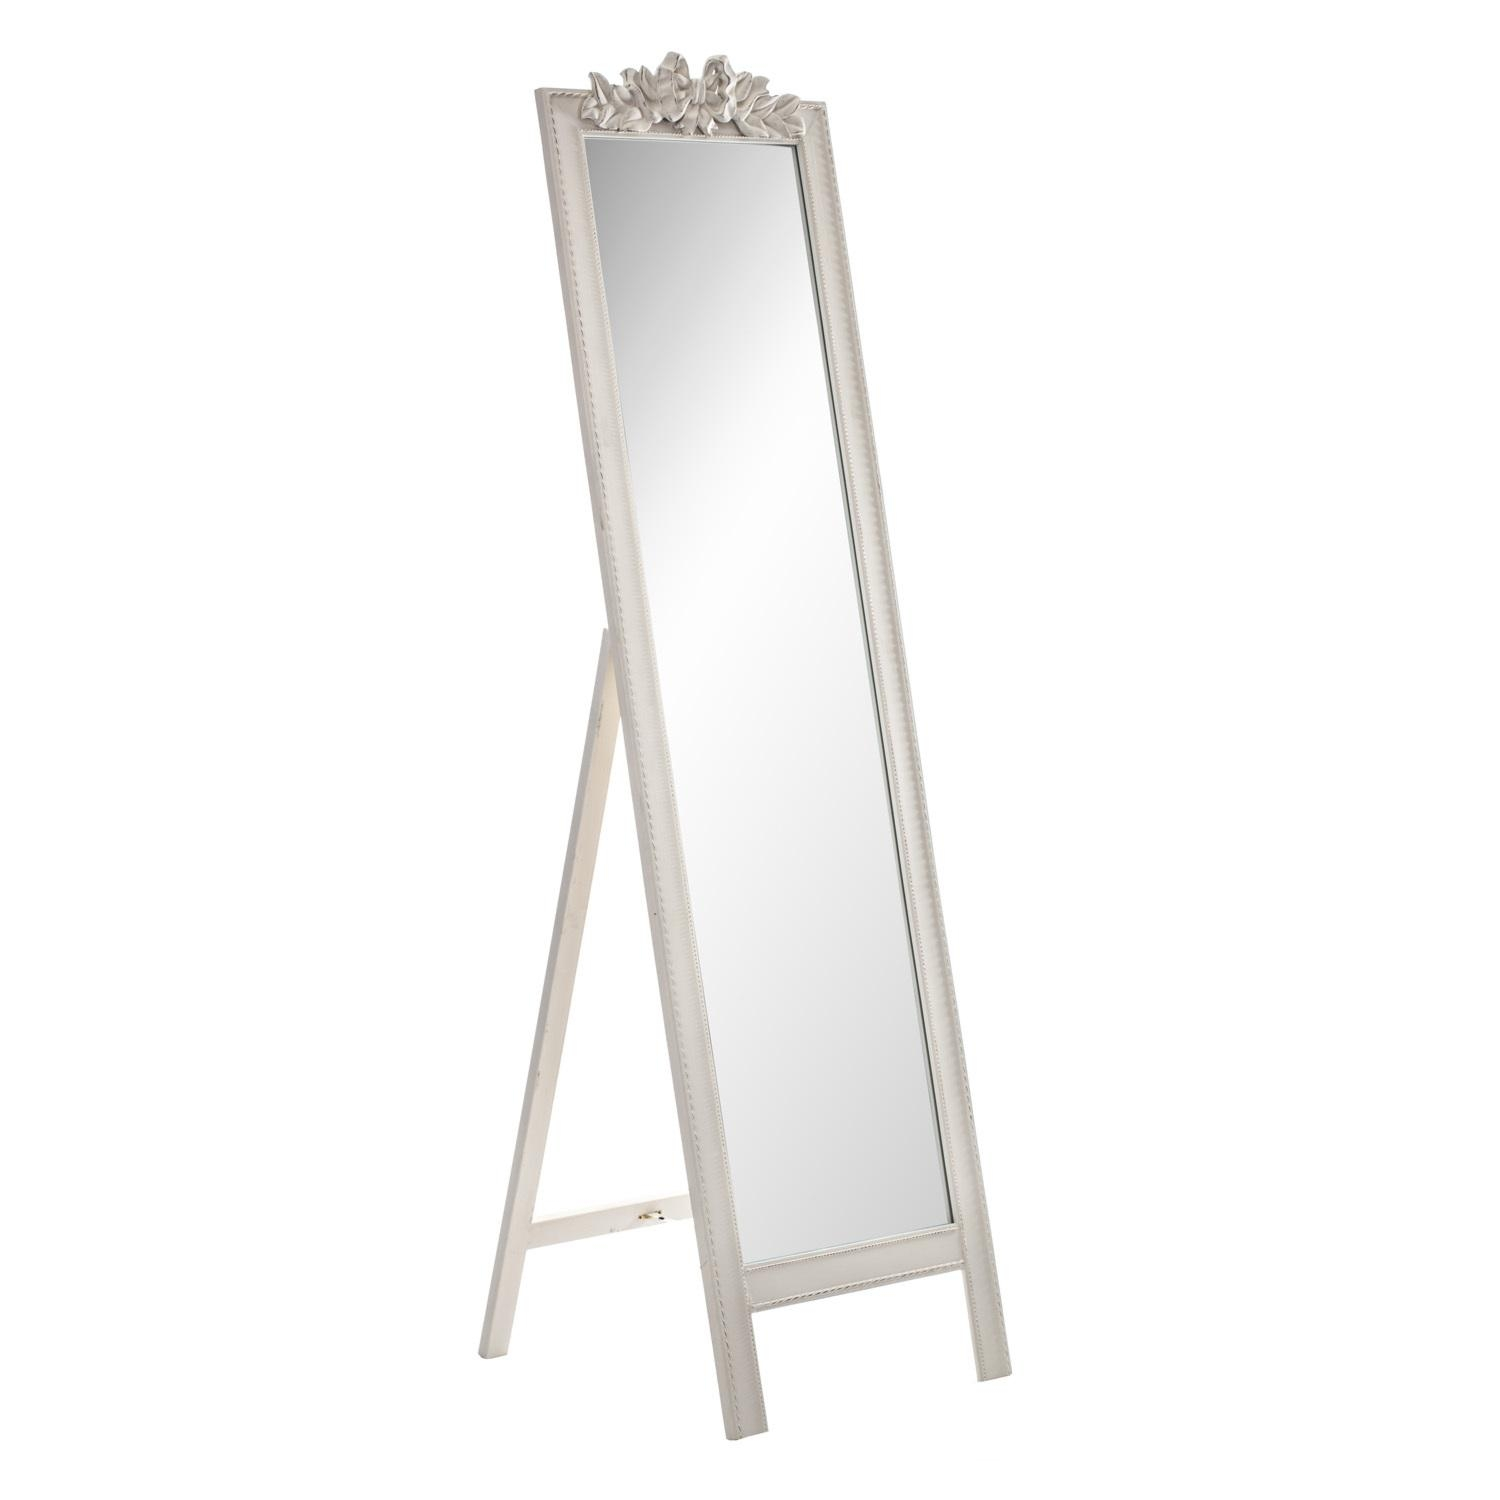 Homeware: Oval Full Length Standing Mirror | Large Floor Mirrors Intended For Free Standing Oak Mirror (Image 20 of 20)